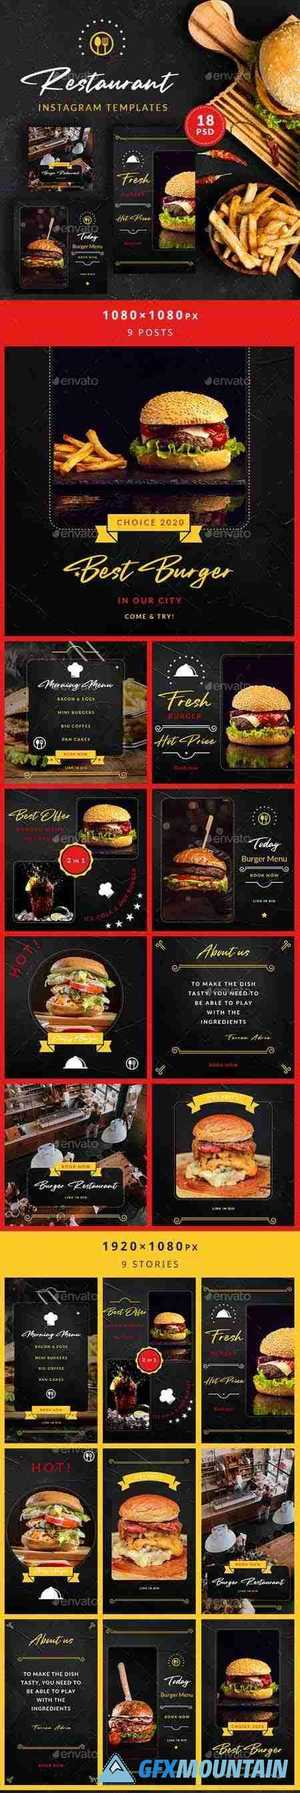 Burger Restaurant Instagram Posts&Stories 26312636